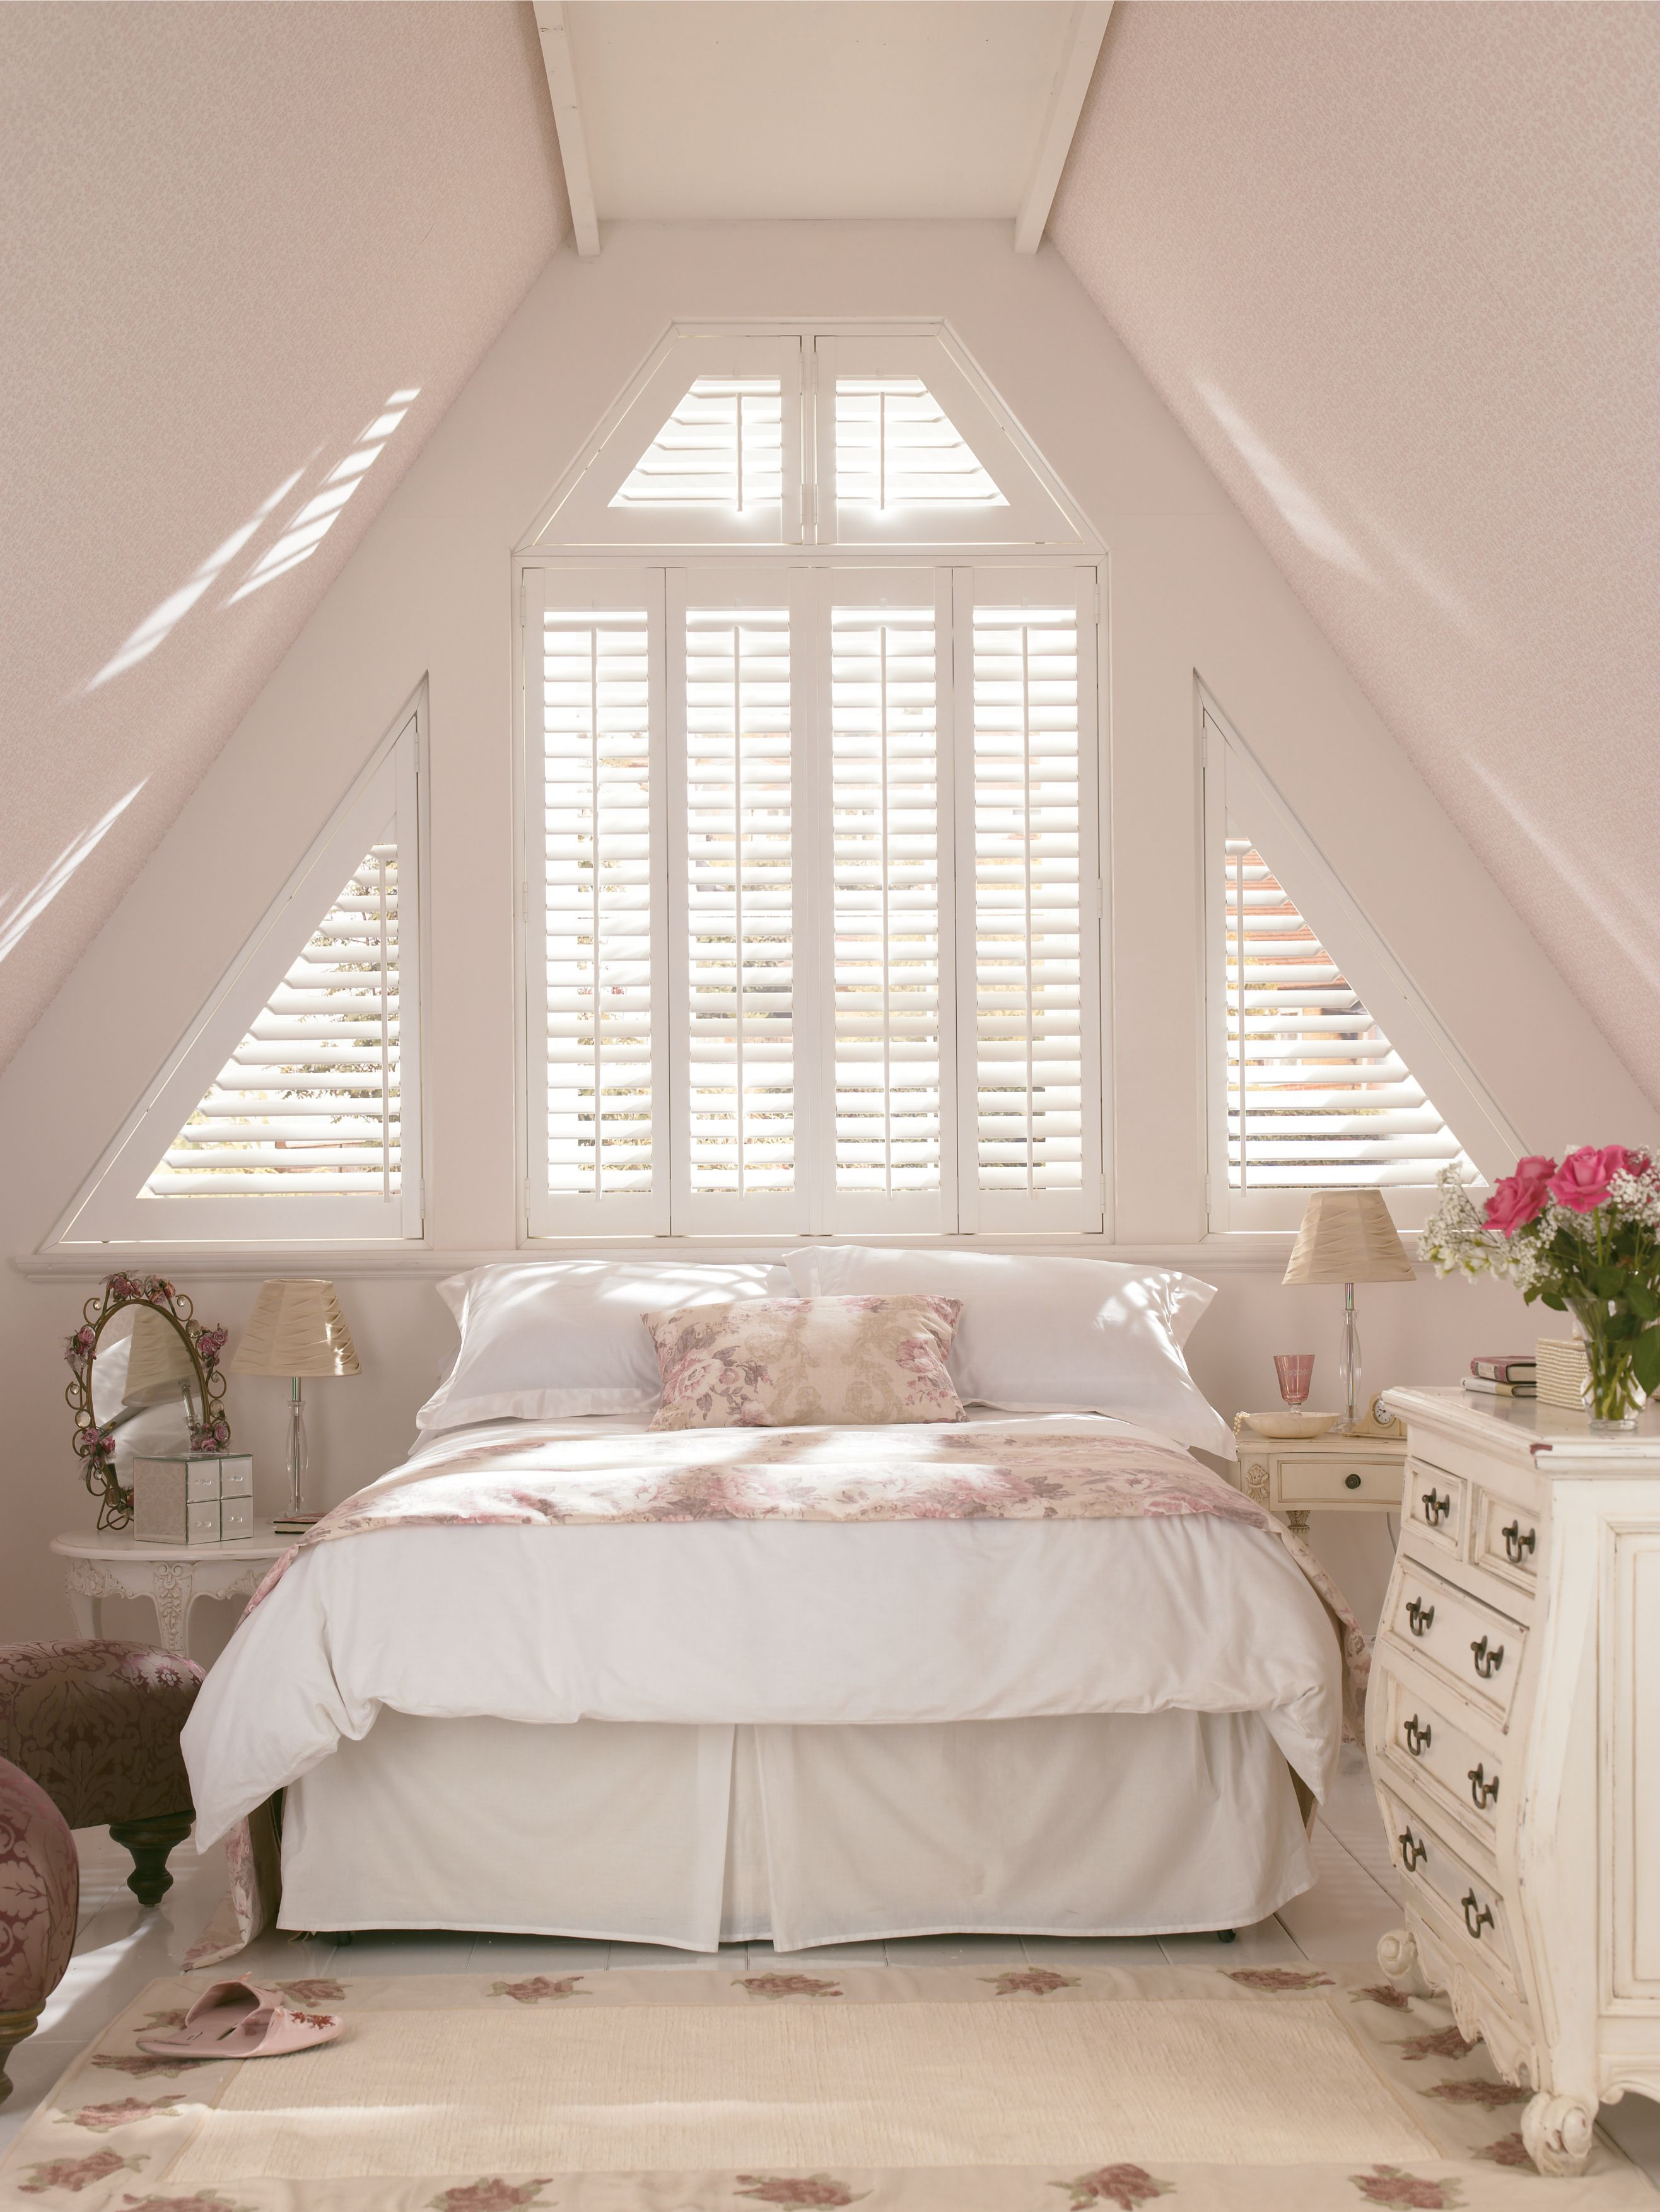 Bright White Décor Lighten Up Small Rooms. Add Creams And